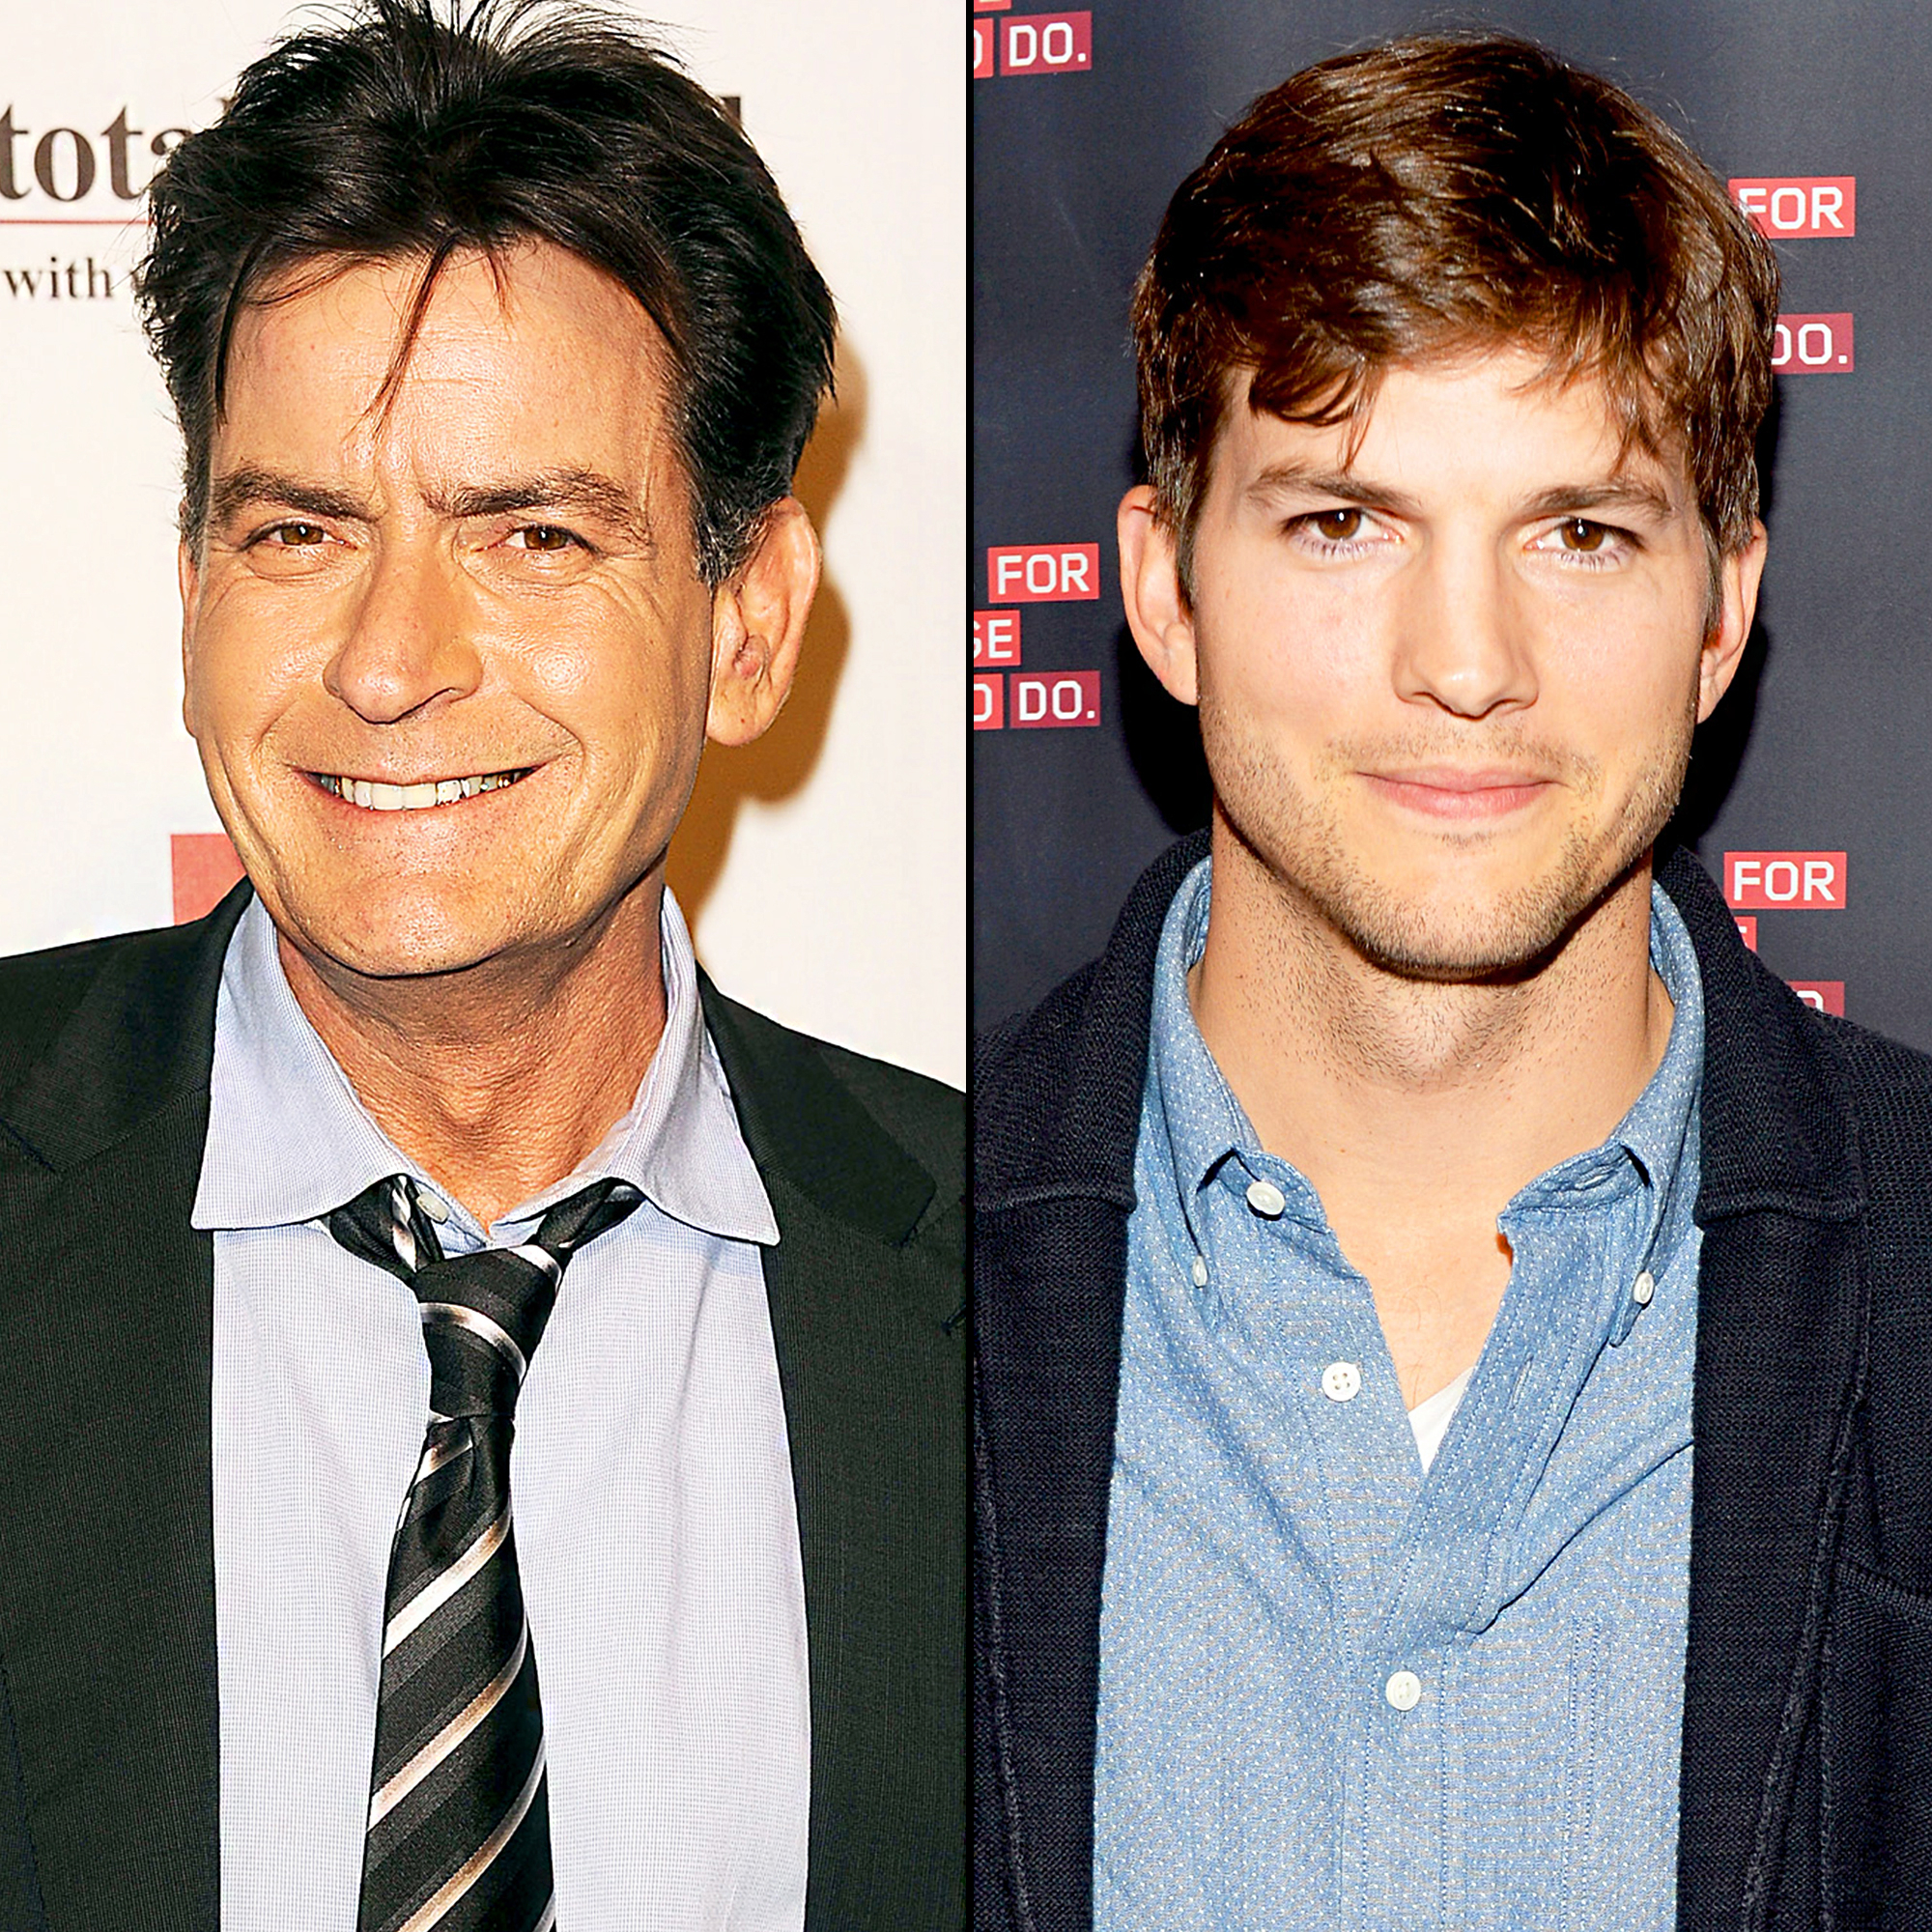 Charlie sheen regrets being stupidly mean to ashton kutcher photos charlies craziest controversies charlie sheen and ashton kutcher thecheapjerseys Choice Image